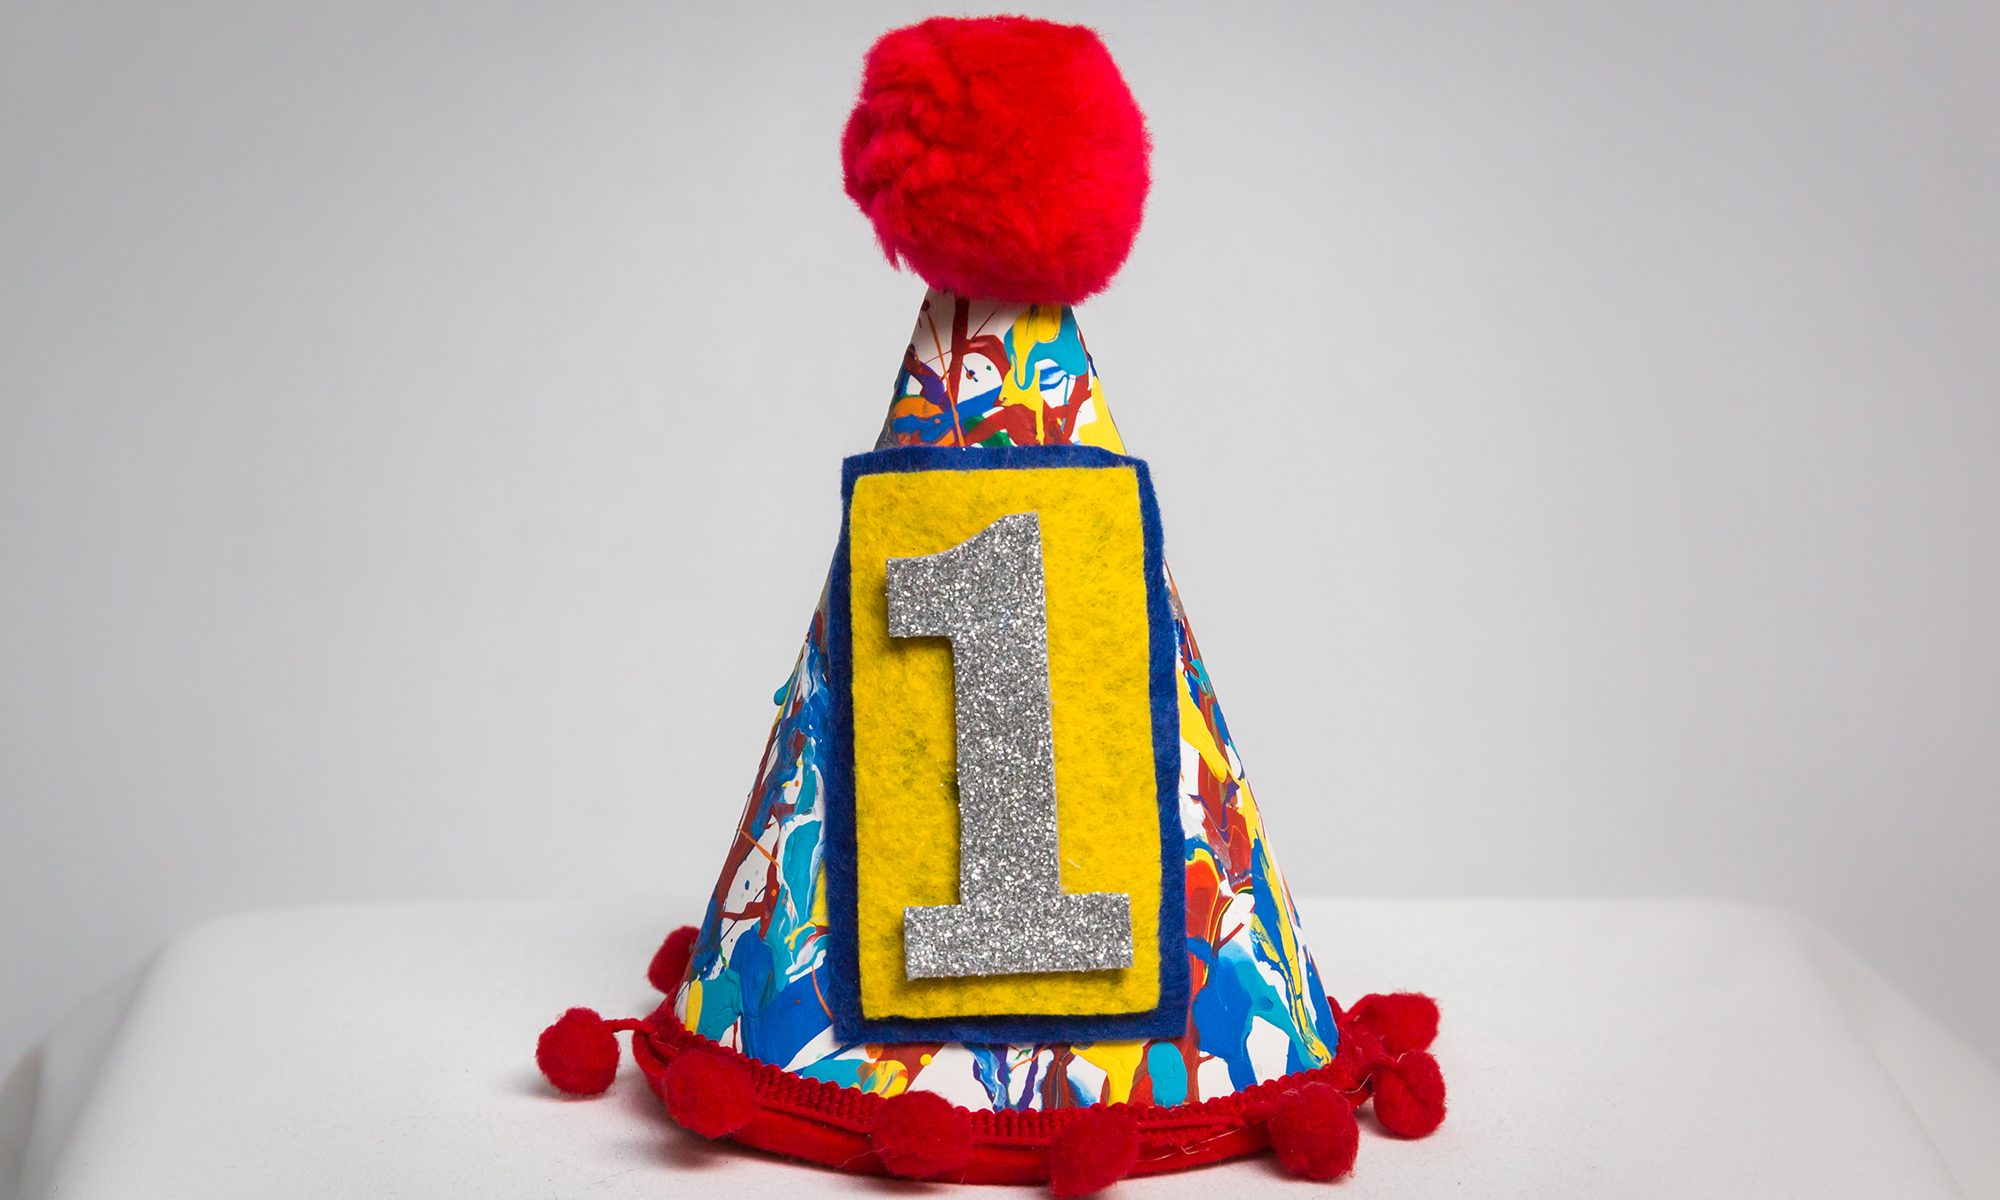 Child's first birthday party hat with red pom pom